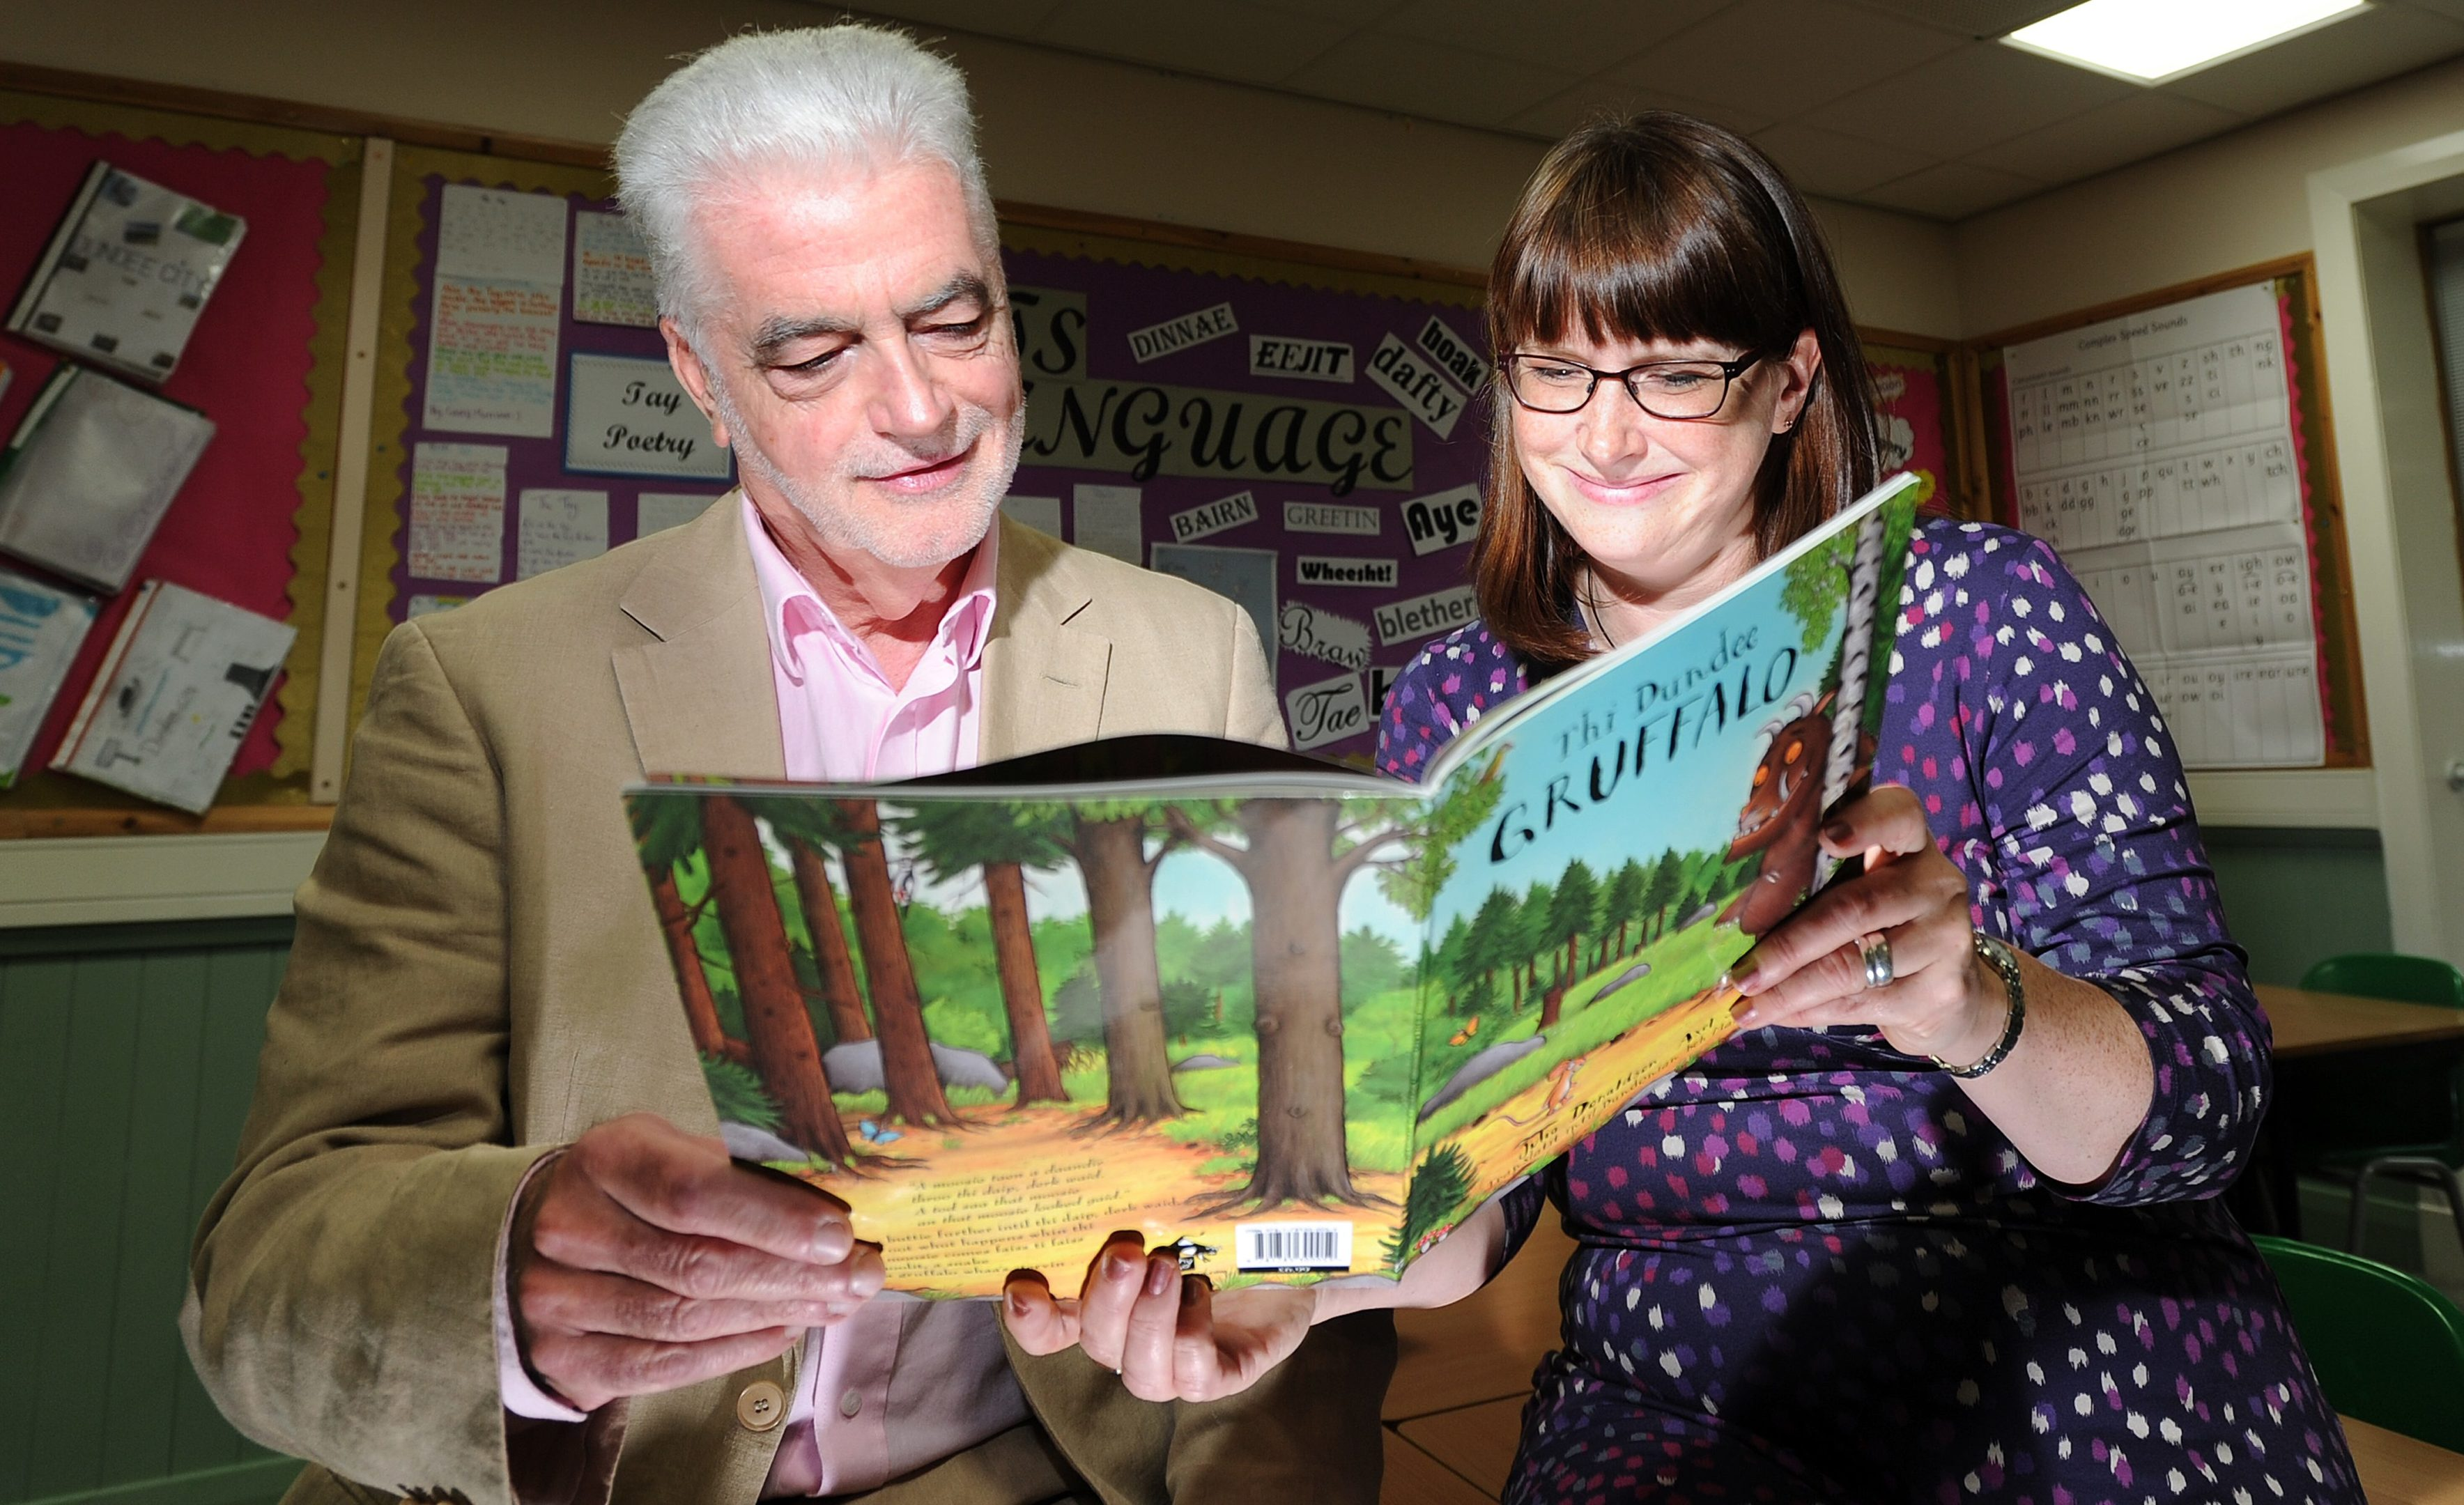 Billy Kay and Diane Anderson peruse the Dundee Gruffalo at Morgan Academy in 2016